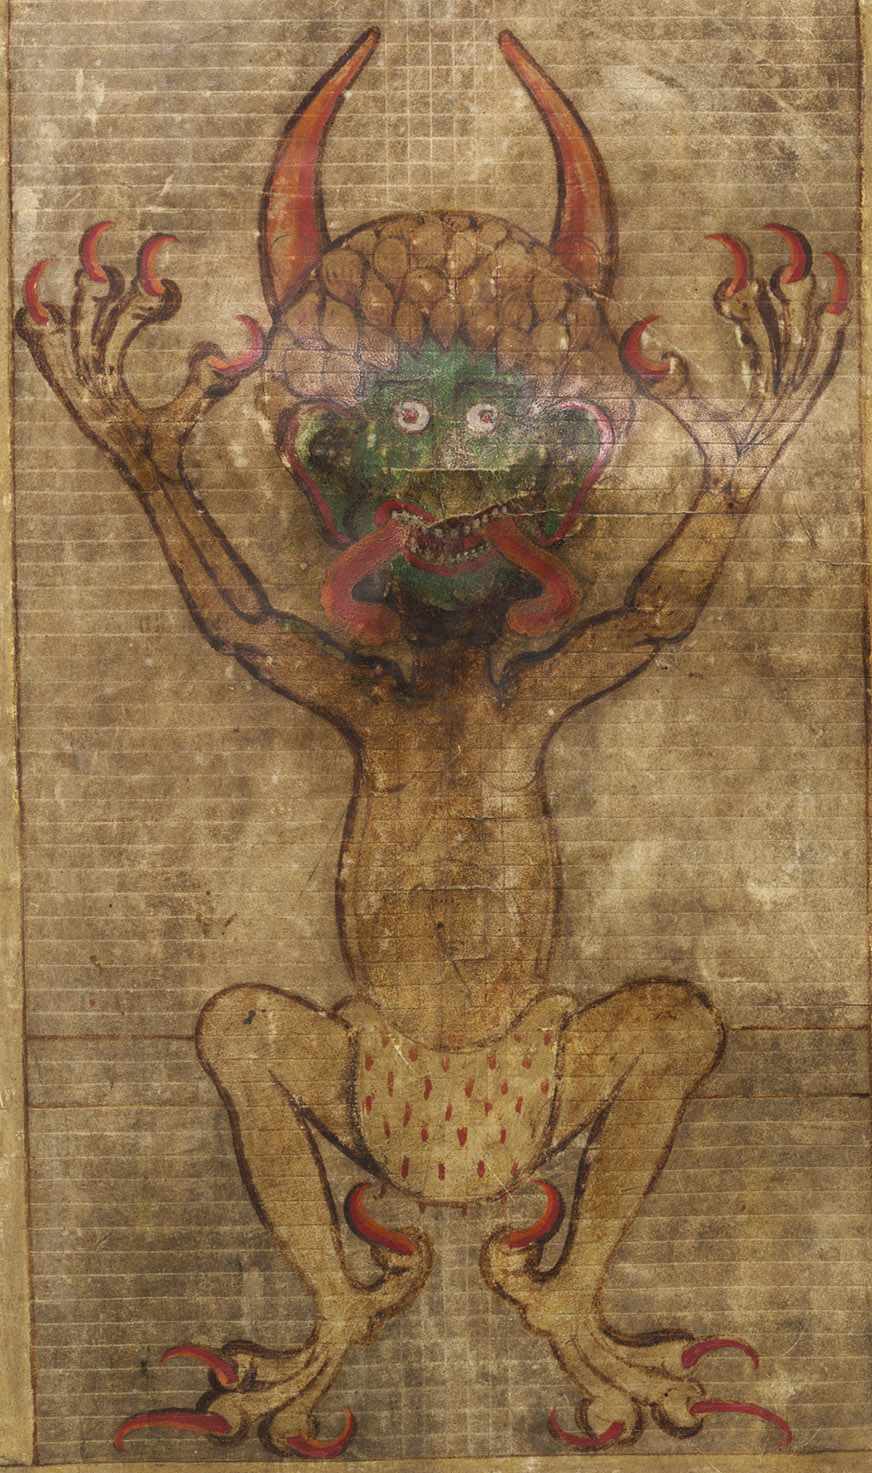 El diablo en el 'Codex Gigas' - Foto: National Library of Sweden